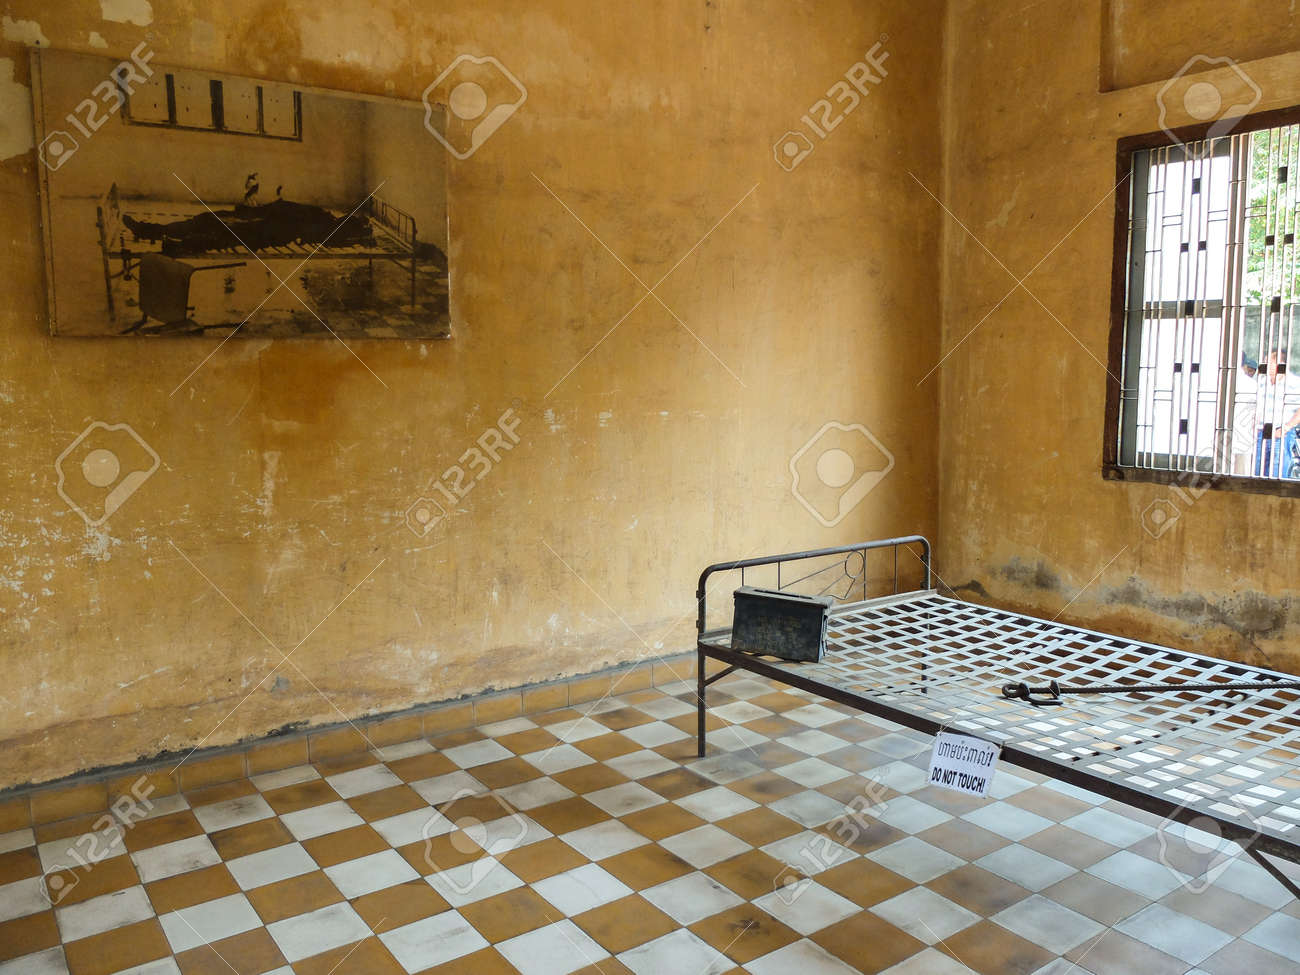 Phnom Penh Cambodia March 17 2015 Tuol Sleng Prison Of Stock Photo Picture And Royalty Free Image Image 52569172